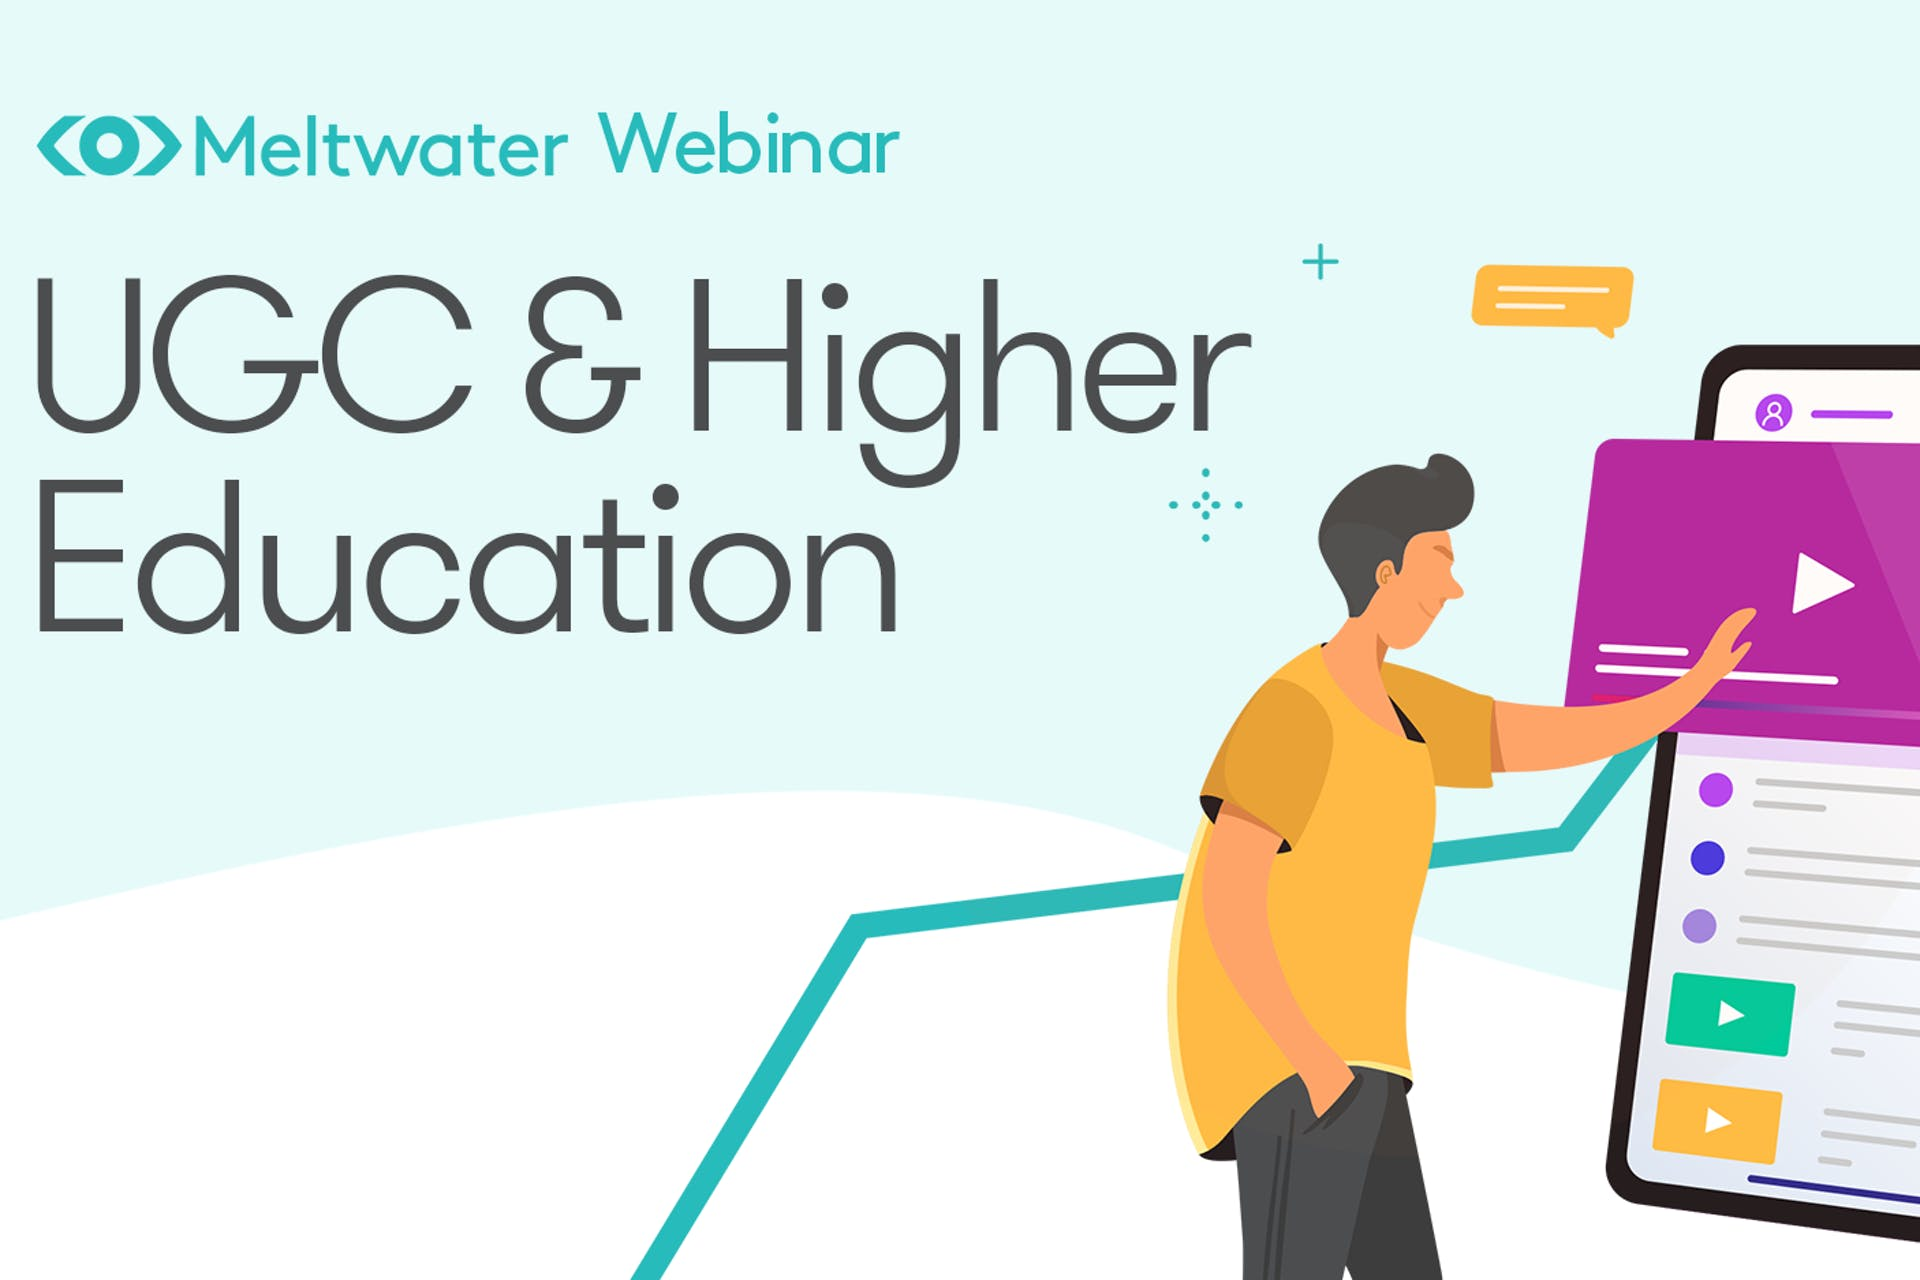 Hero image for the Meltwater Webinar about User Generated Content & Higher Education